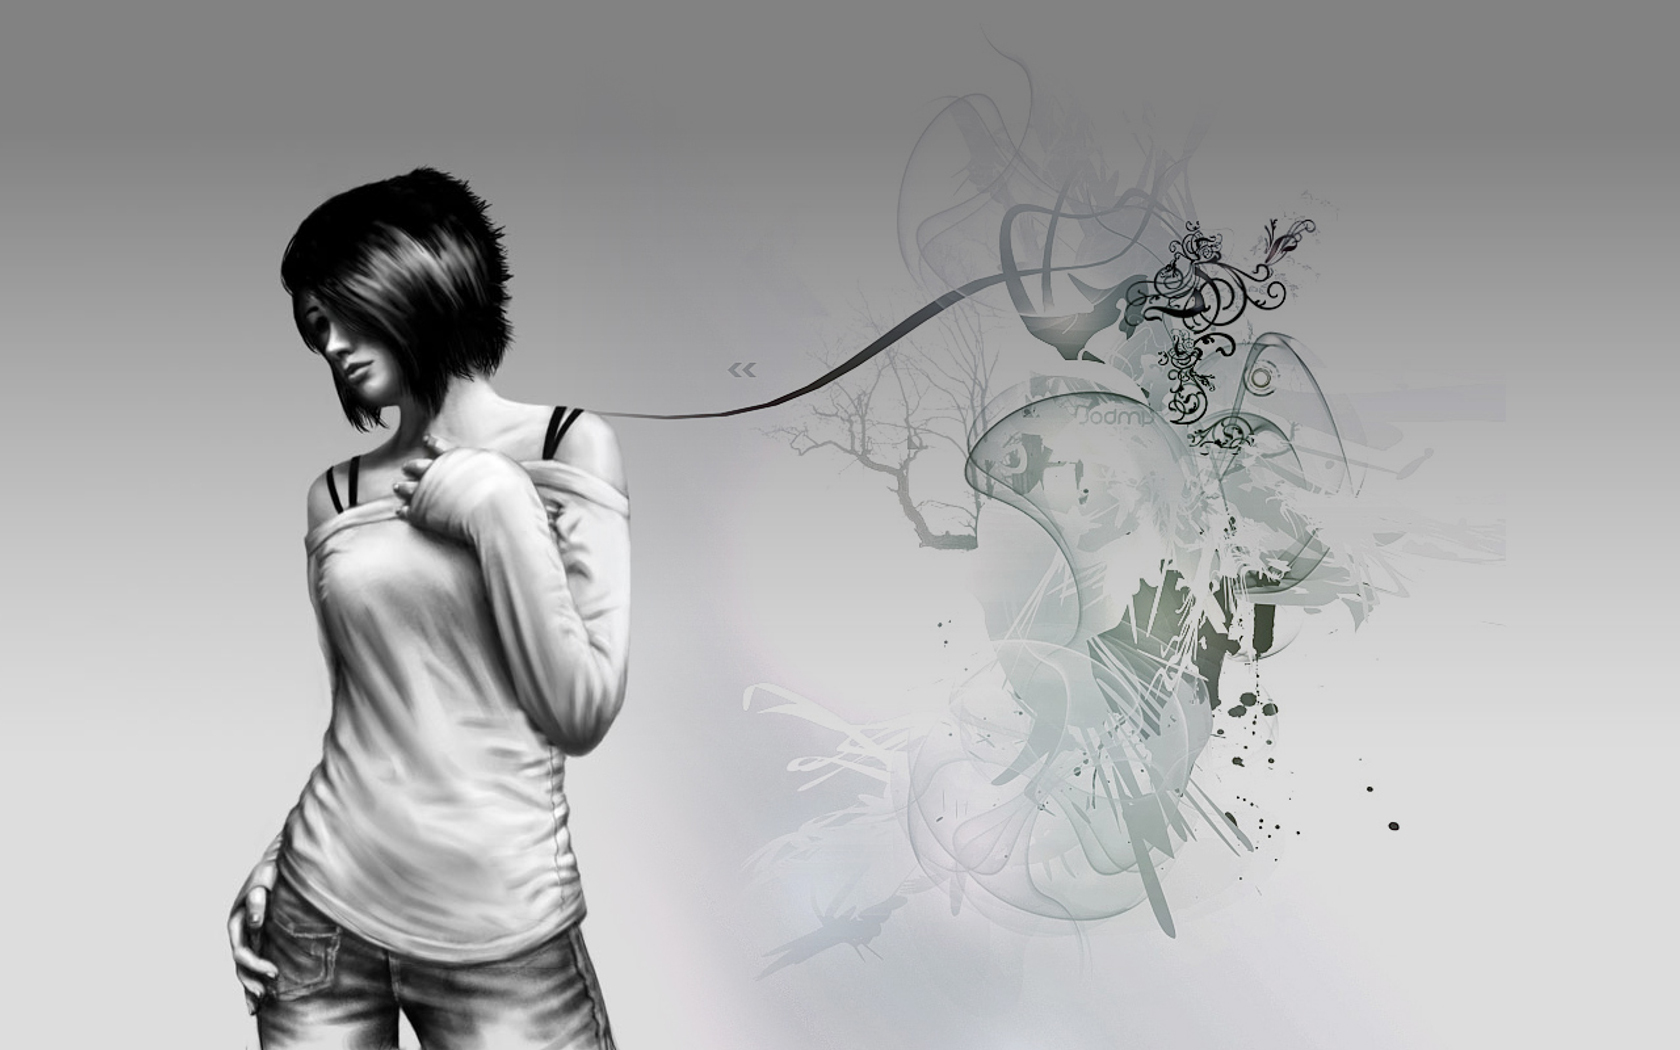 artistic wallpaper and background | 1680x1050 | id:68142